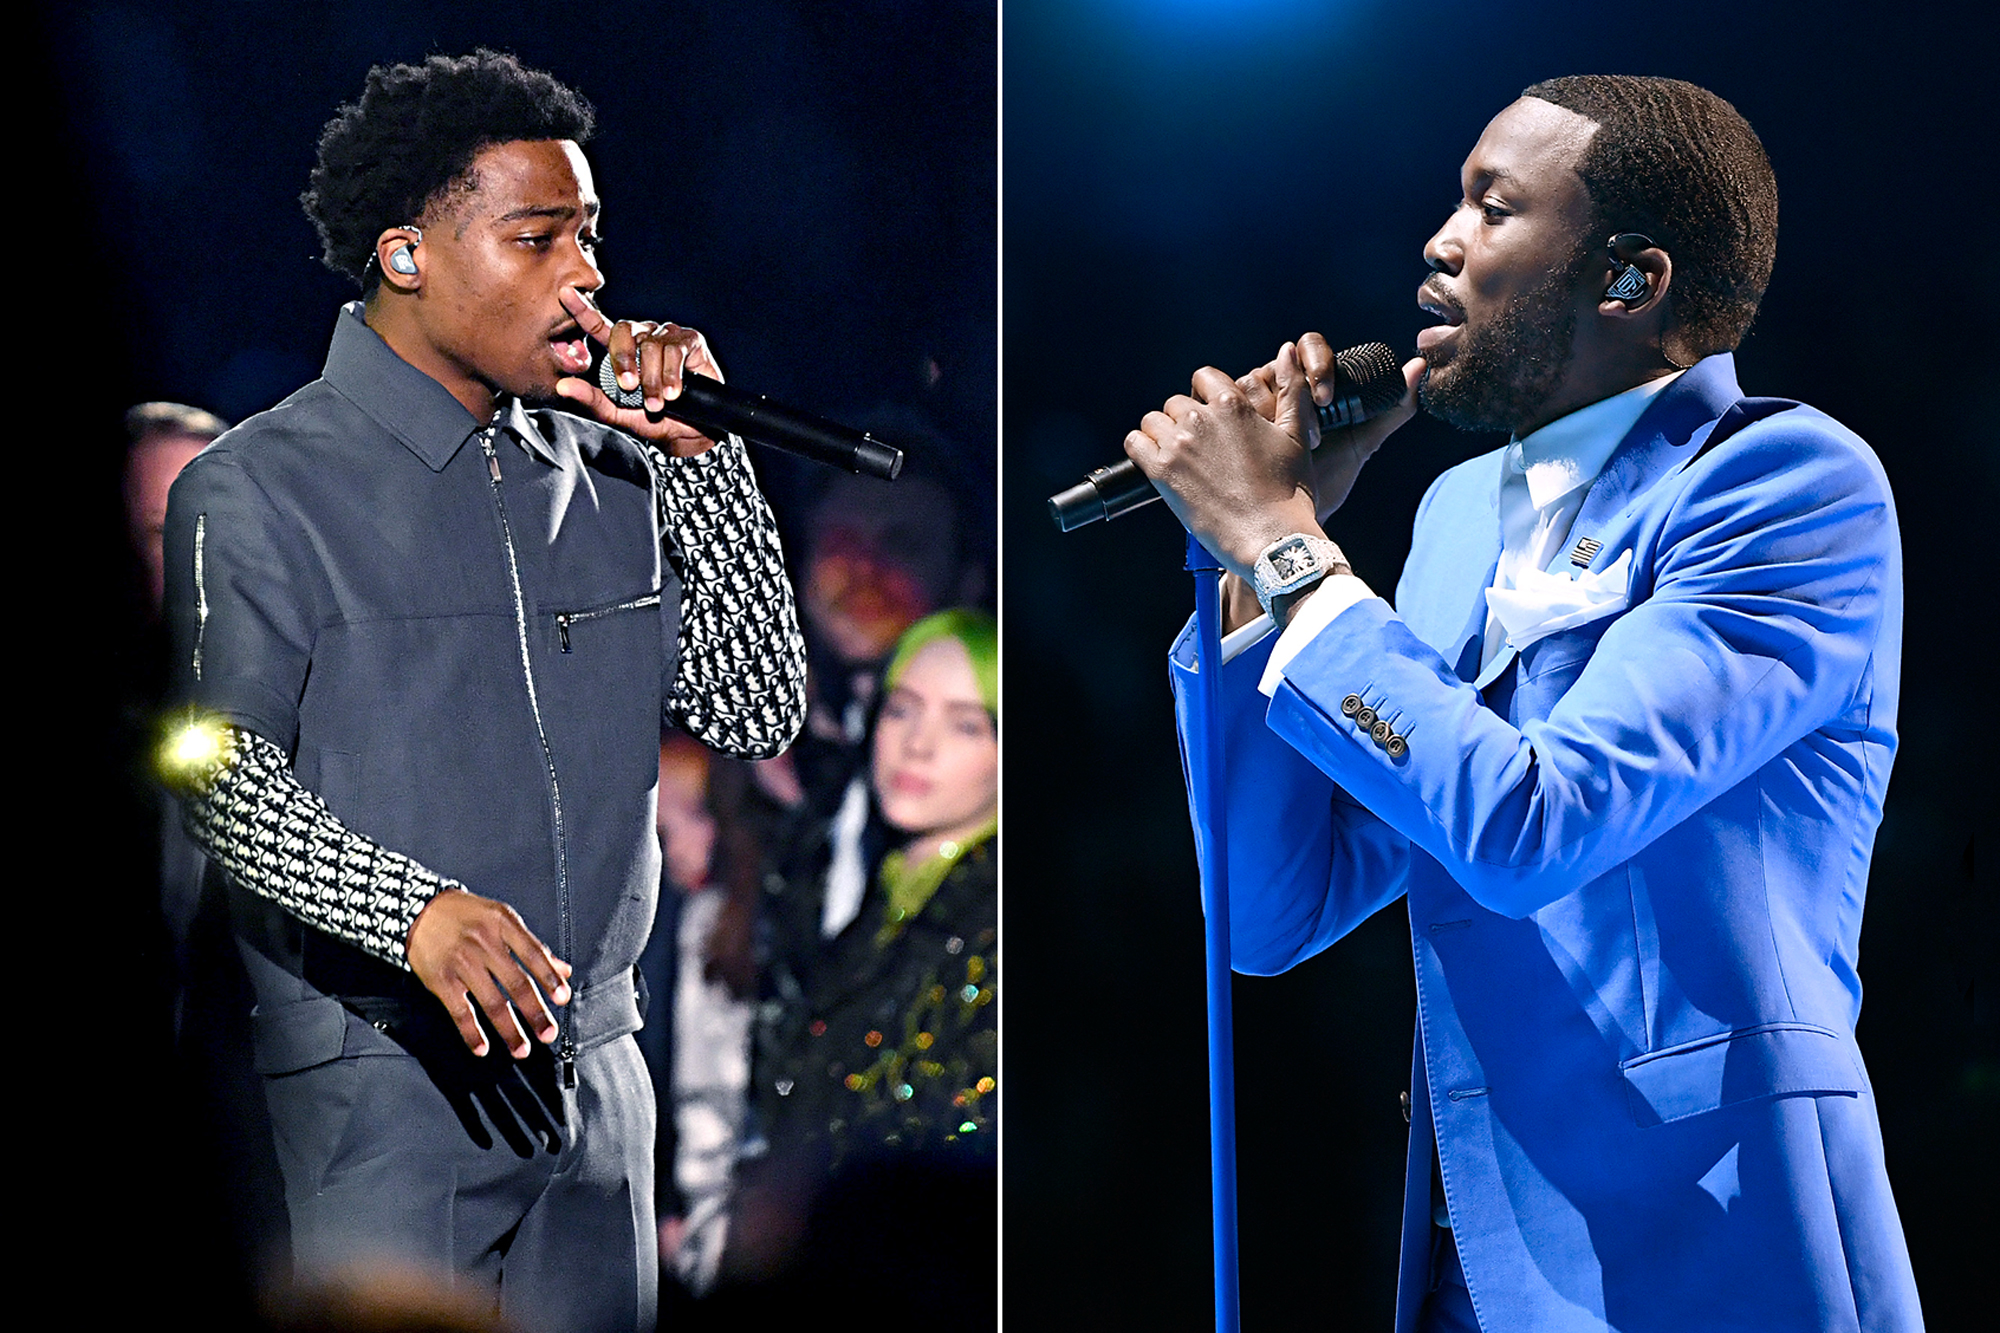 Image result for Meek Mill Grammys 2020 performance Images